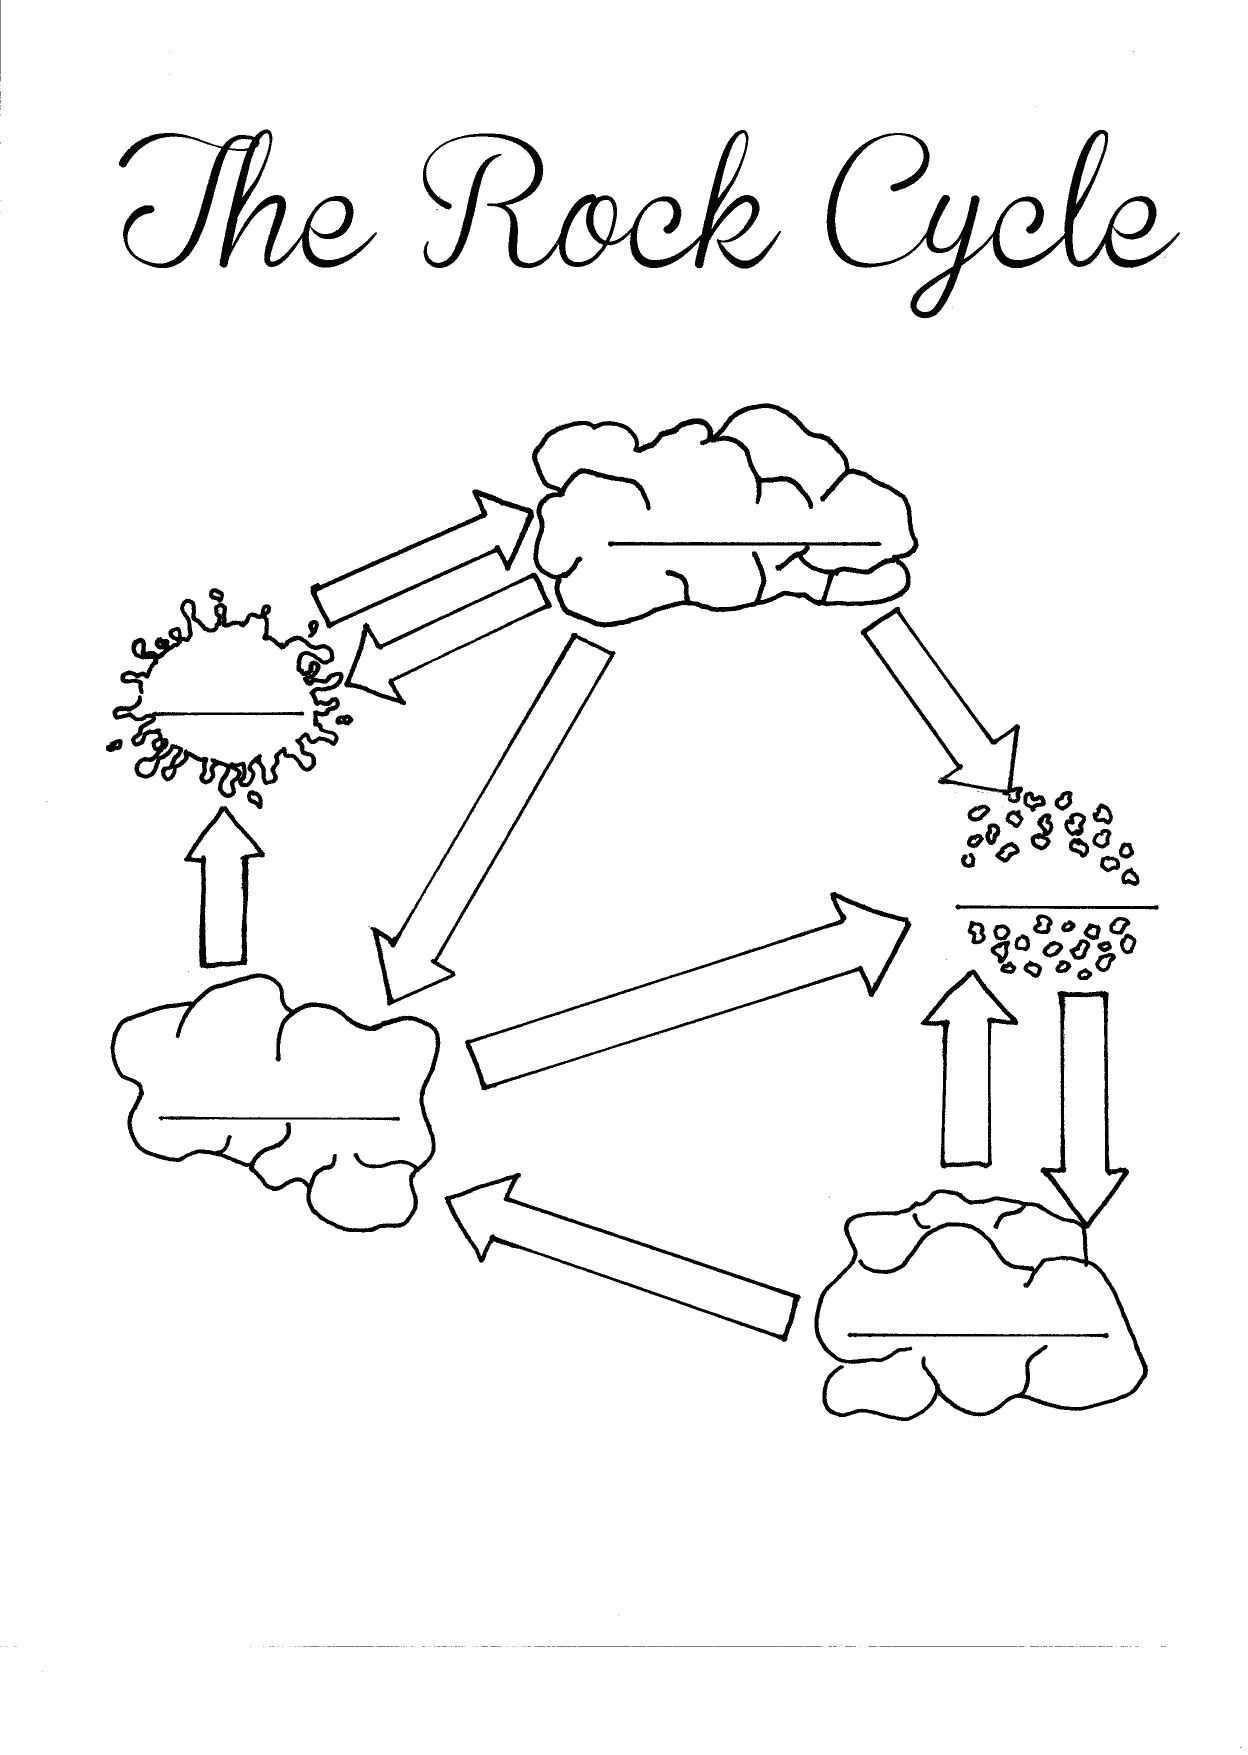 The Rock Cycle Blank Worksheet